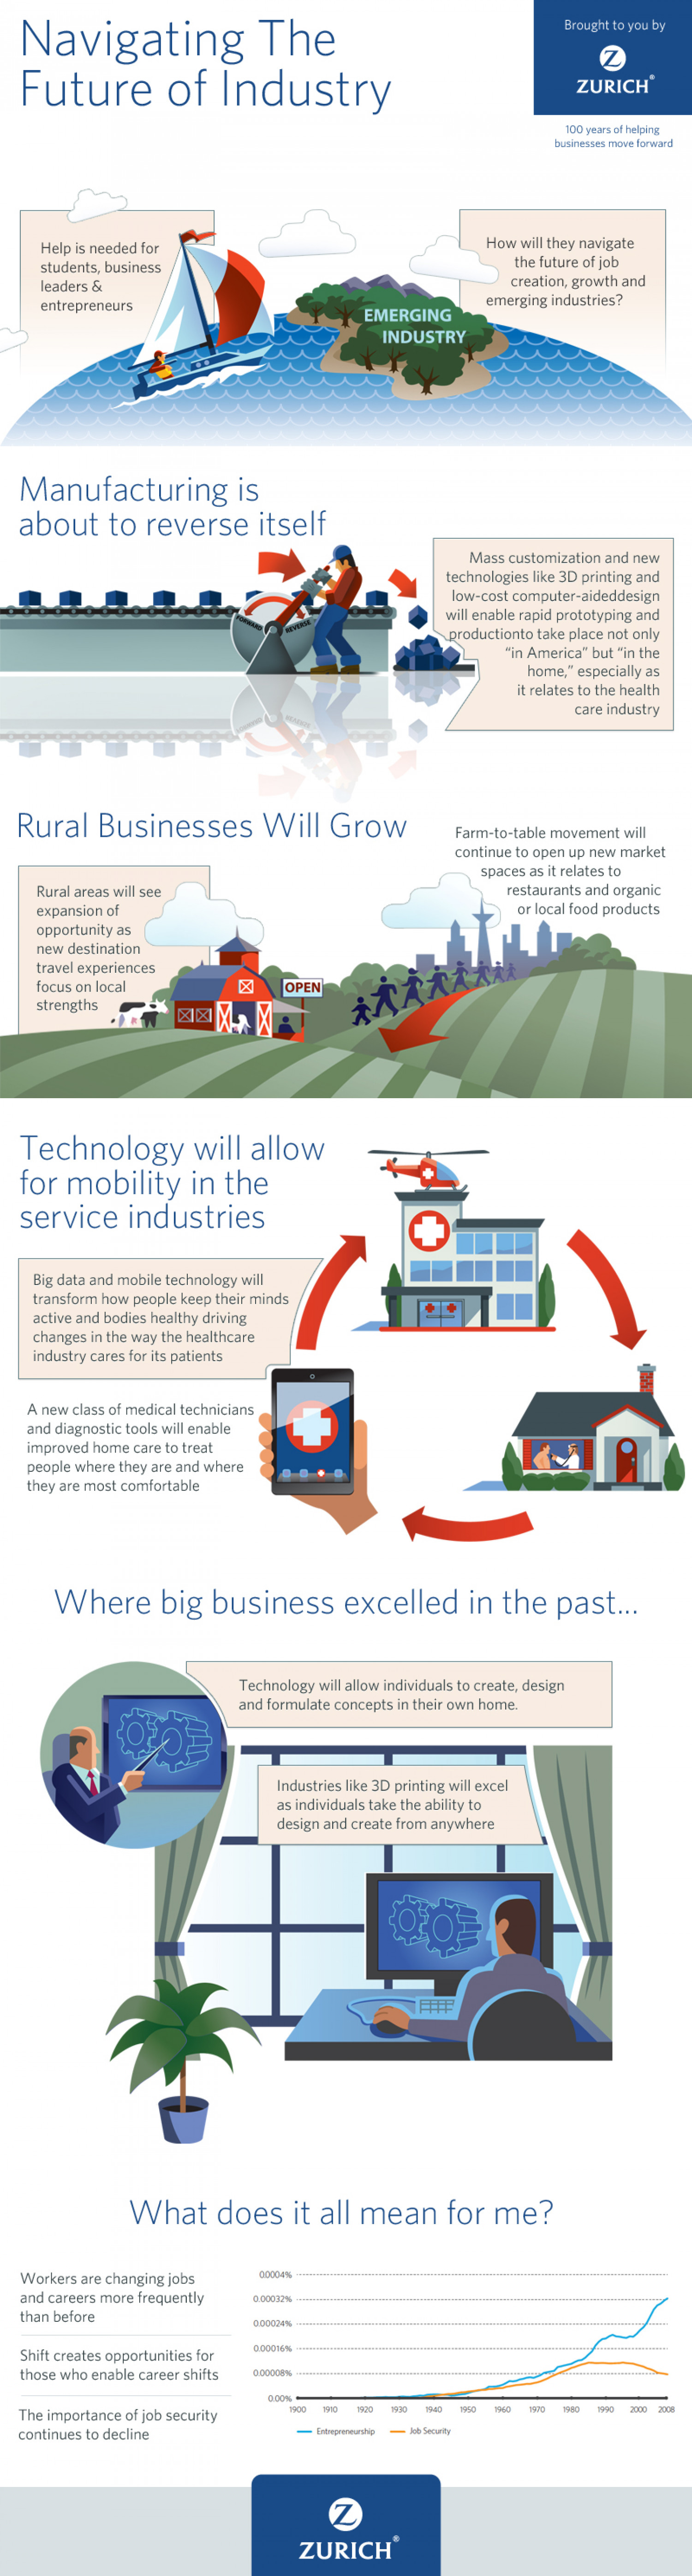 Navigating the Future of the Industry Infographic